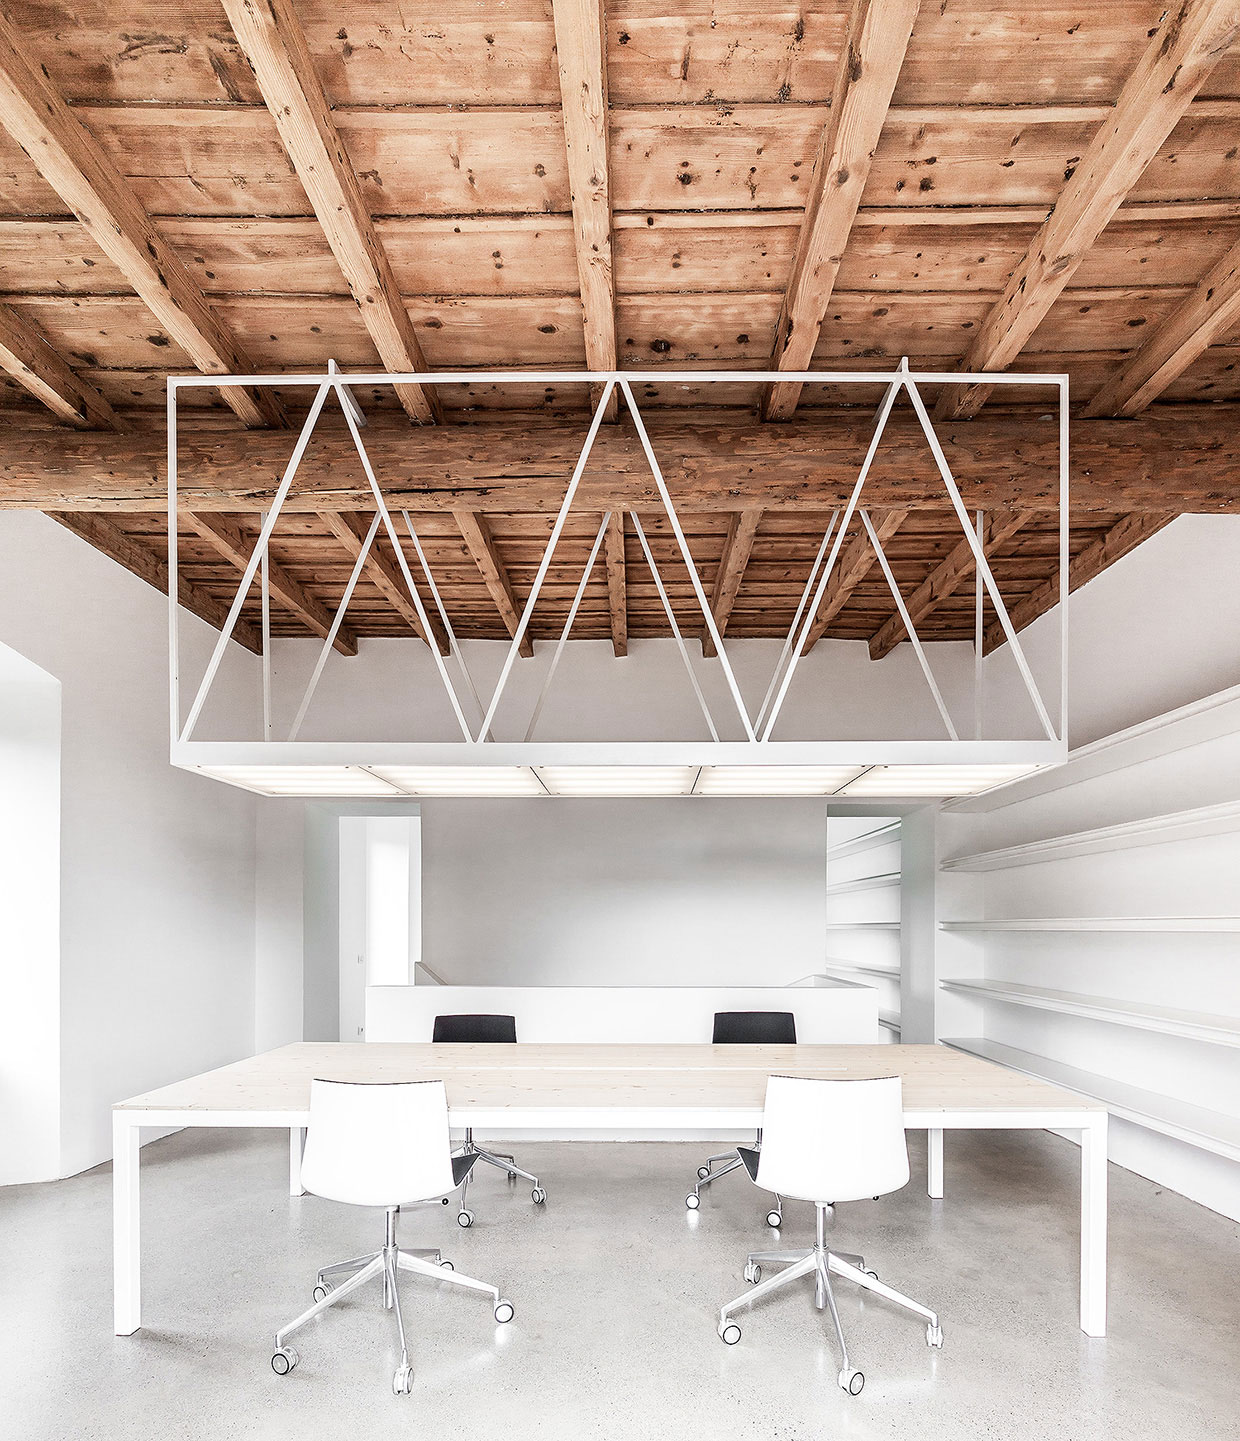 CN10 Architetti's Workspace in Italy   Yellowtrace